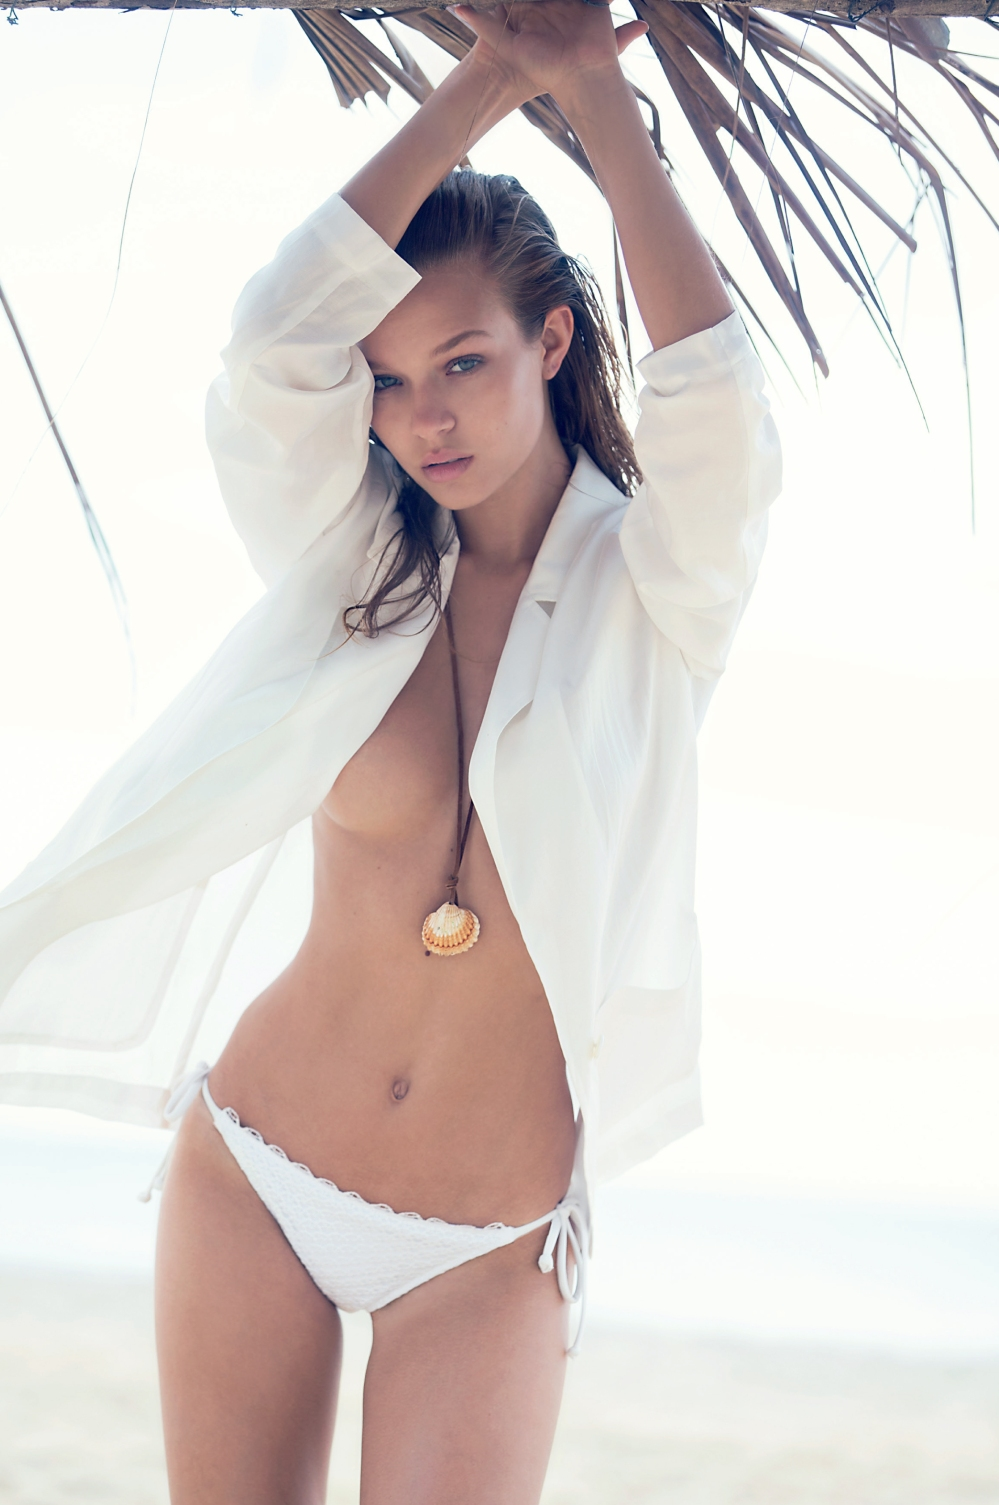 Josephine Skriver for Marie Claire by David Bellemere 5